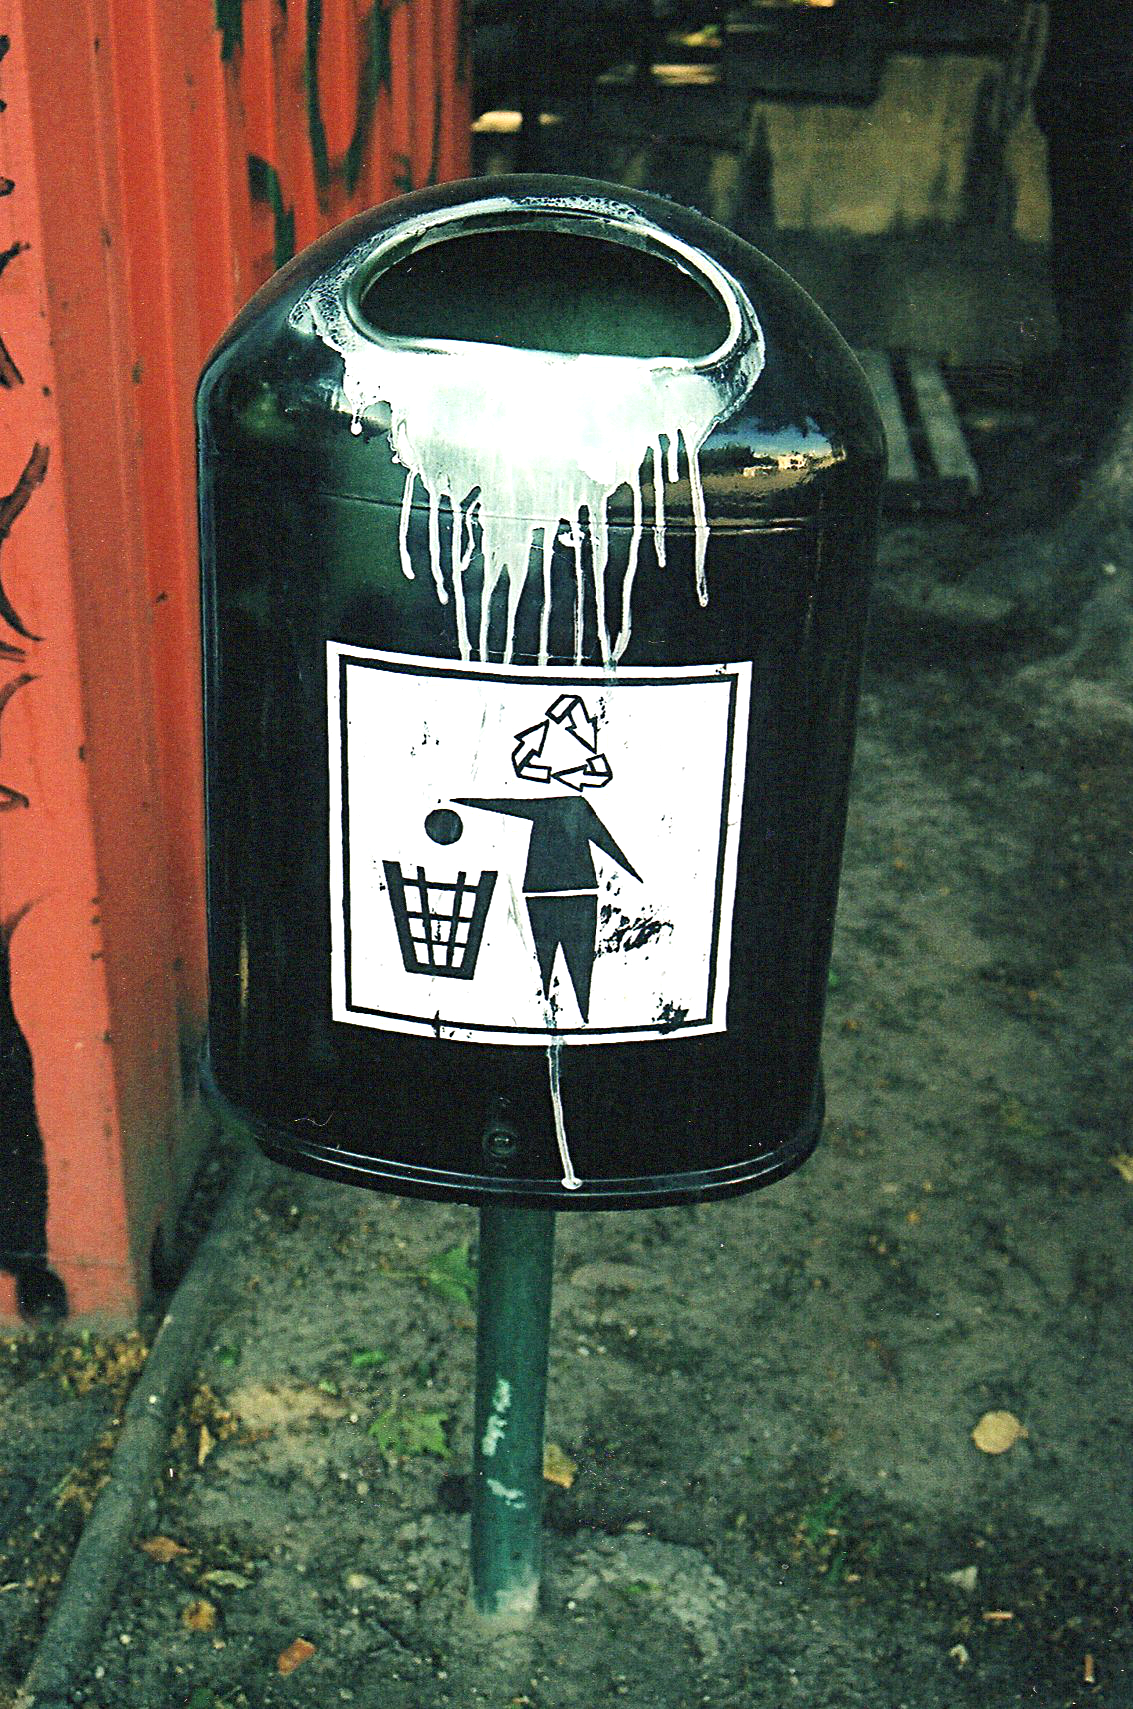 trashcan-edit